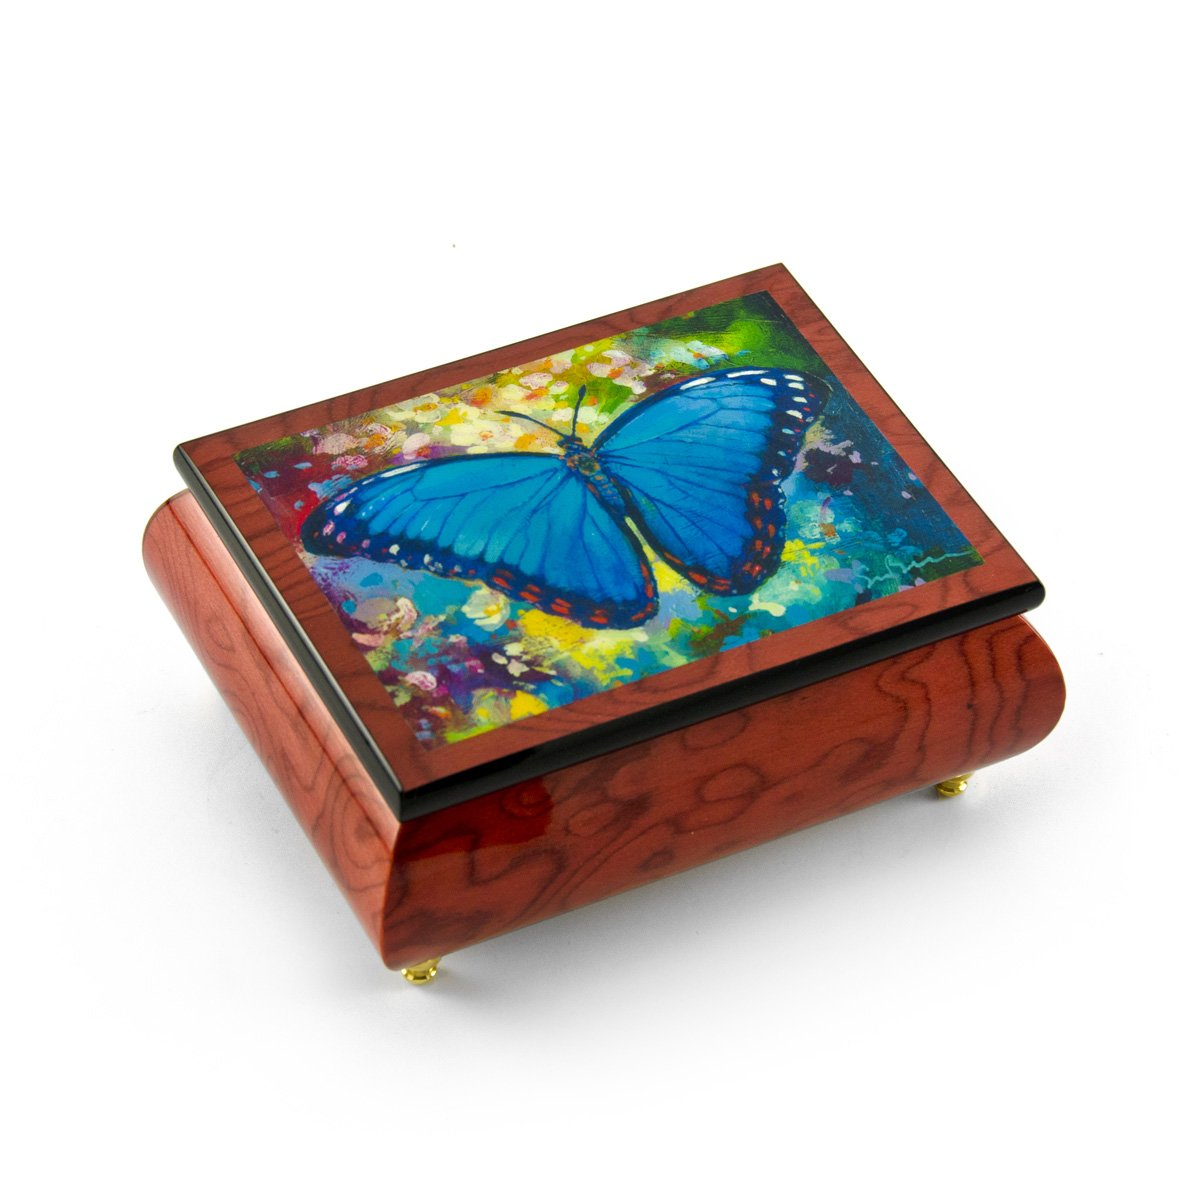 Gorgeous Handcrafted Red-Wine Butterfly Music Box by Ercolano - ''Blue Morpho'' Simon Bull - There is Love (Wedding Song) - SWISS